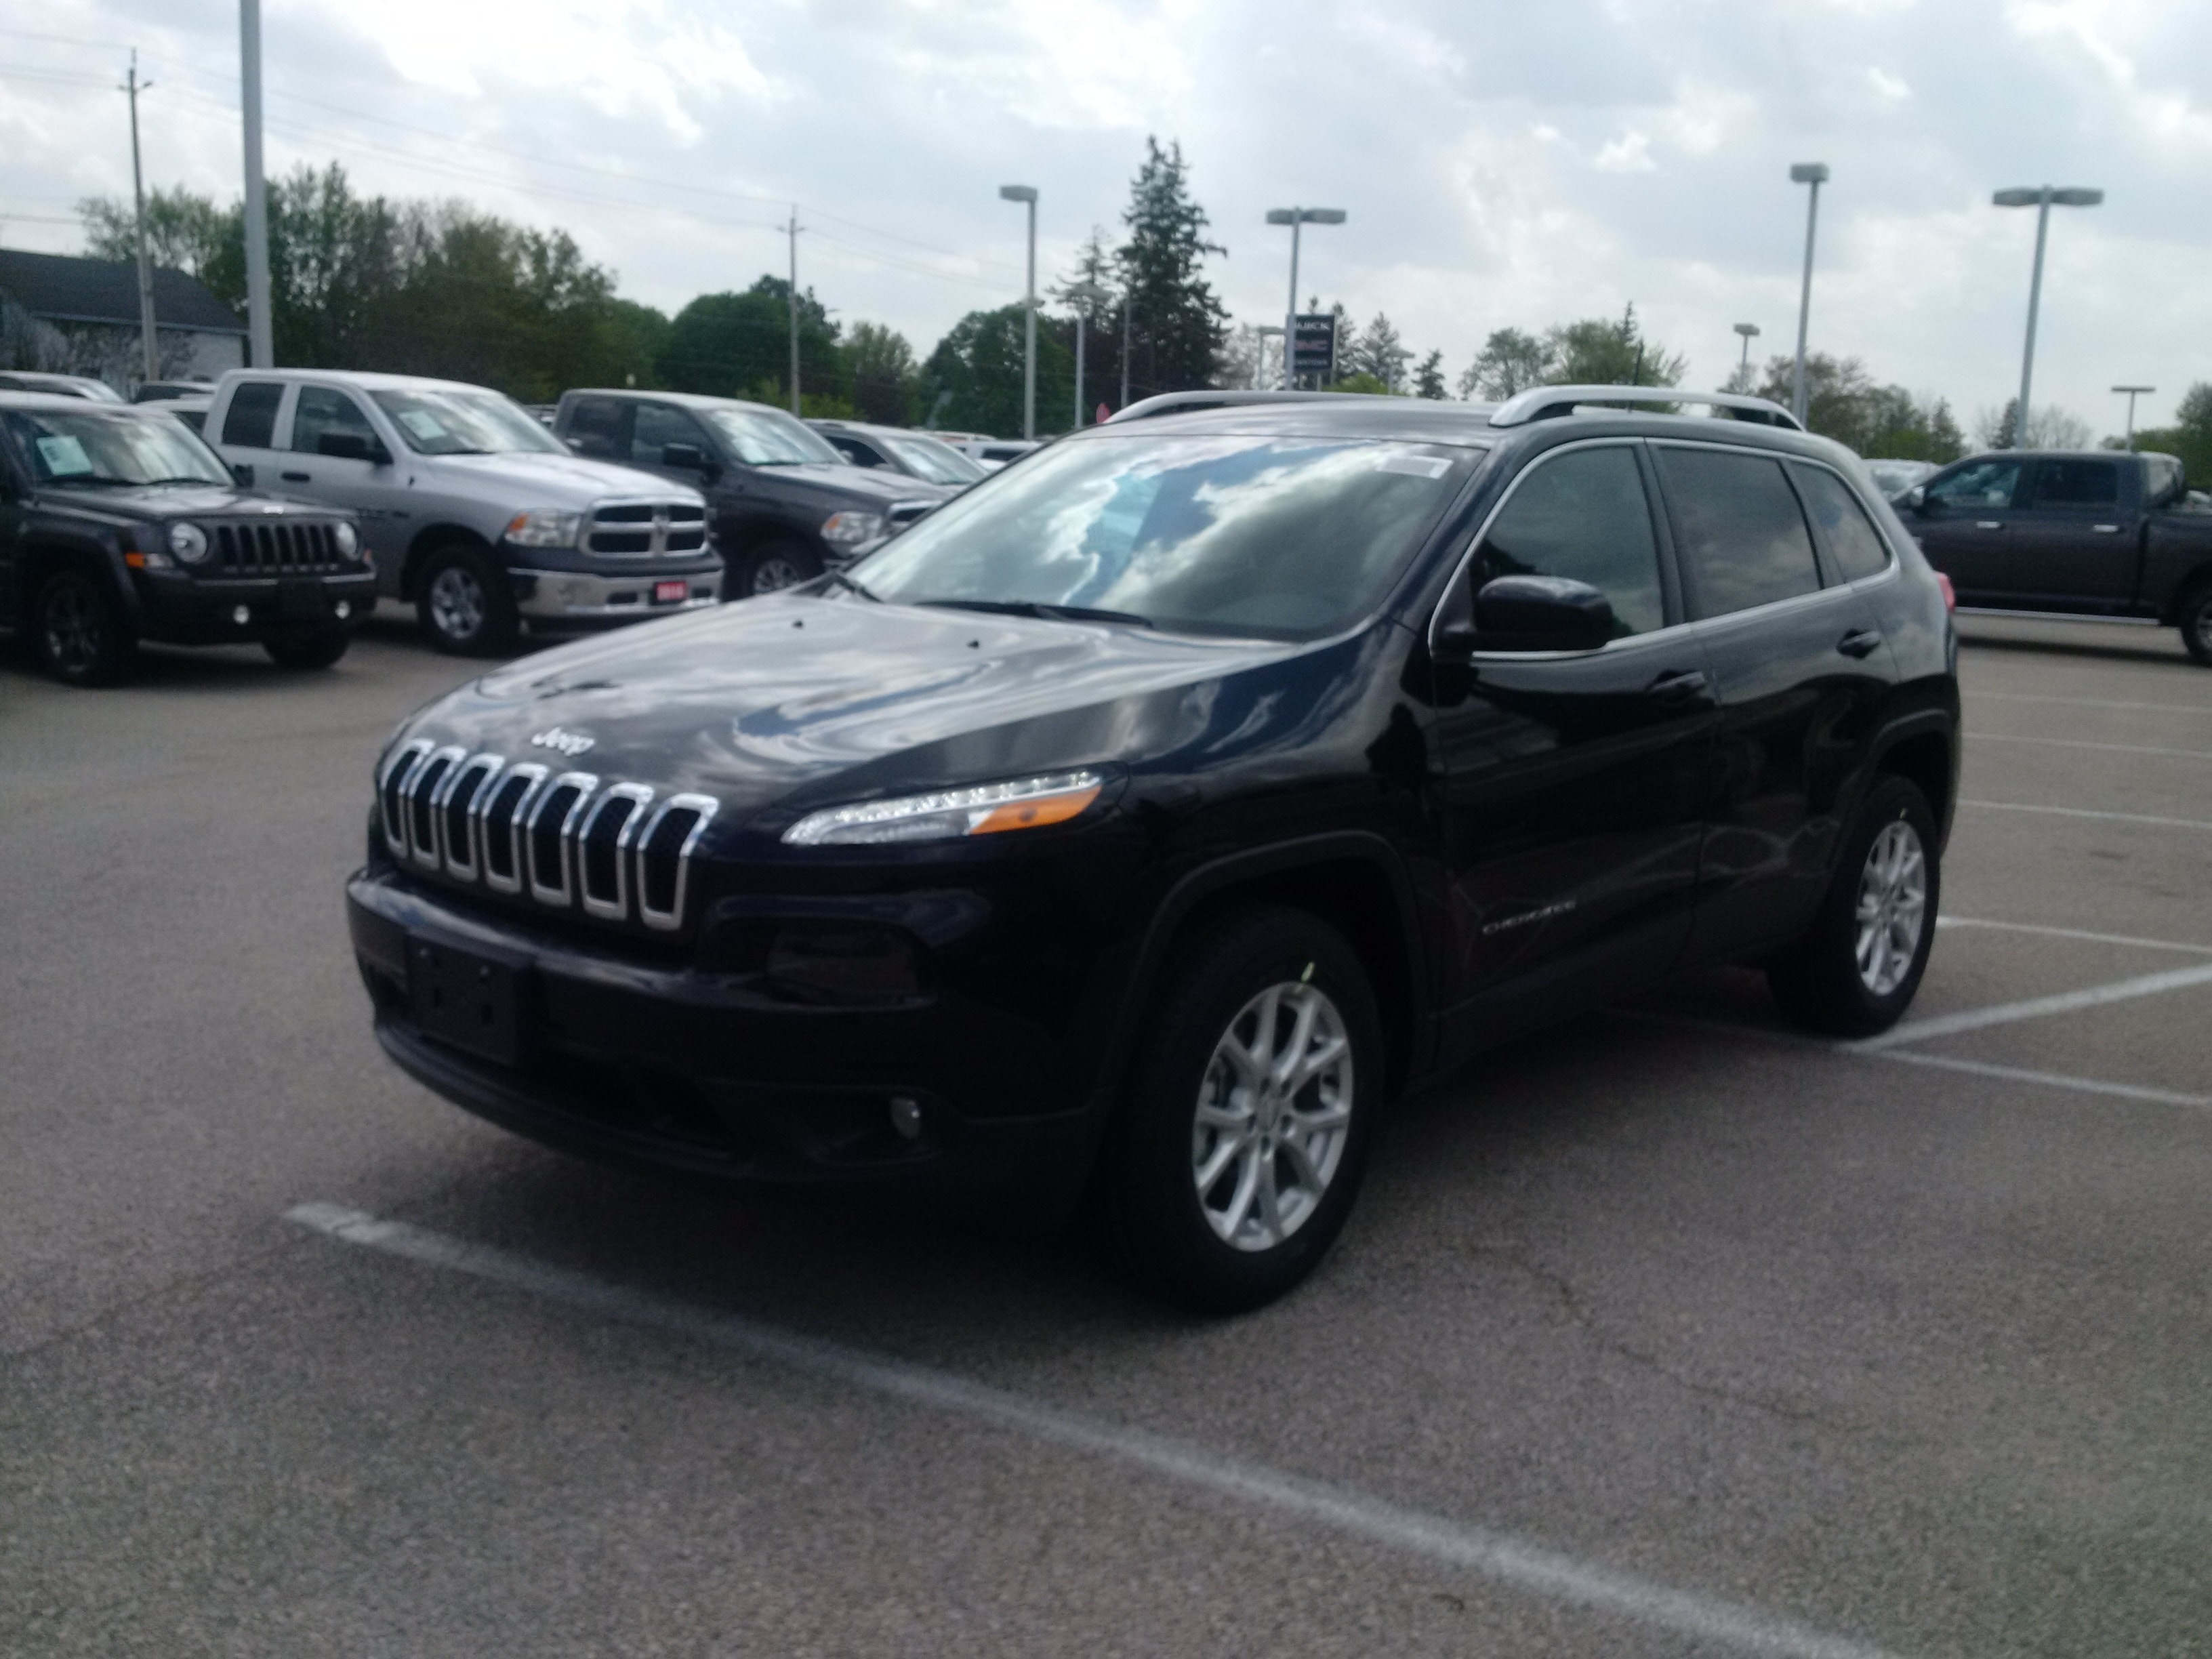 2017 Jeep cherokee North v6 4x4... save huge from a 19! VUS